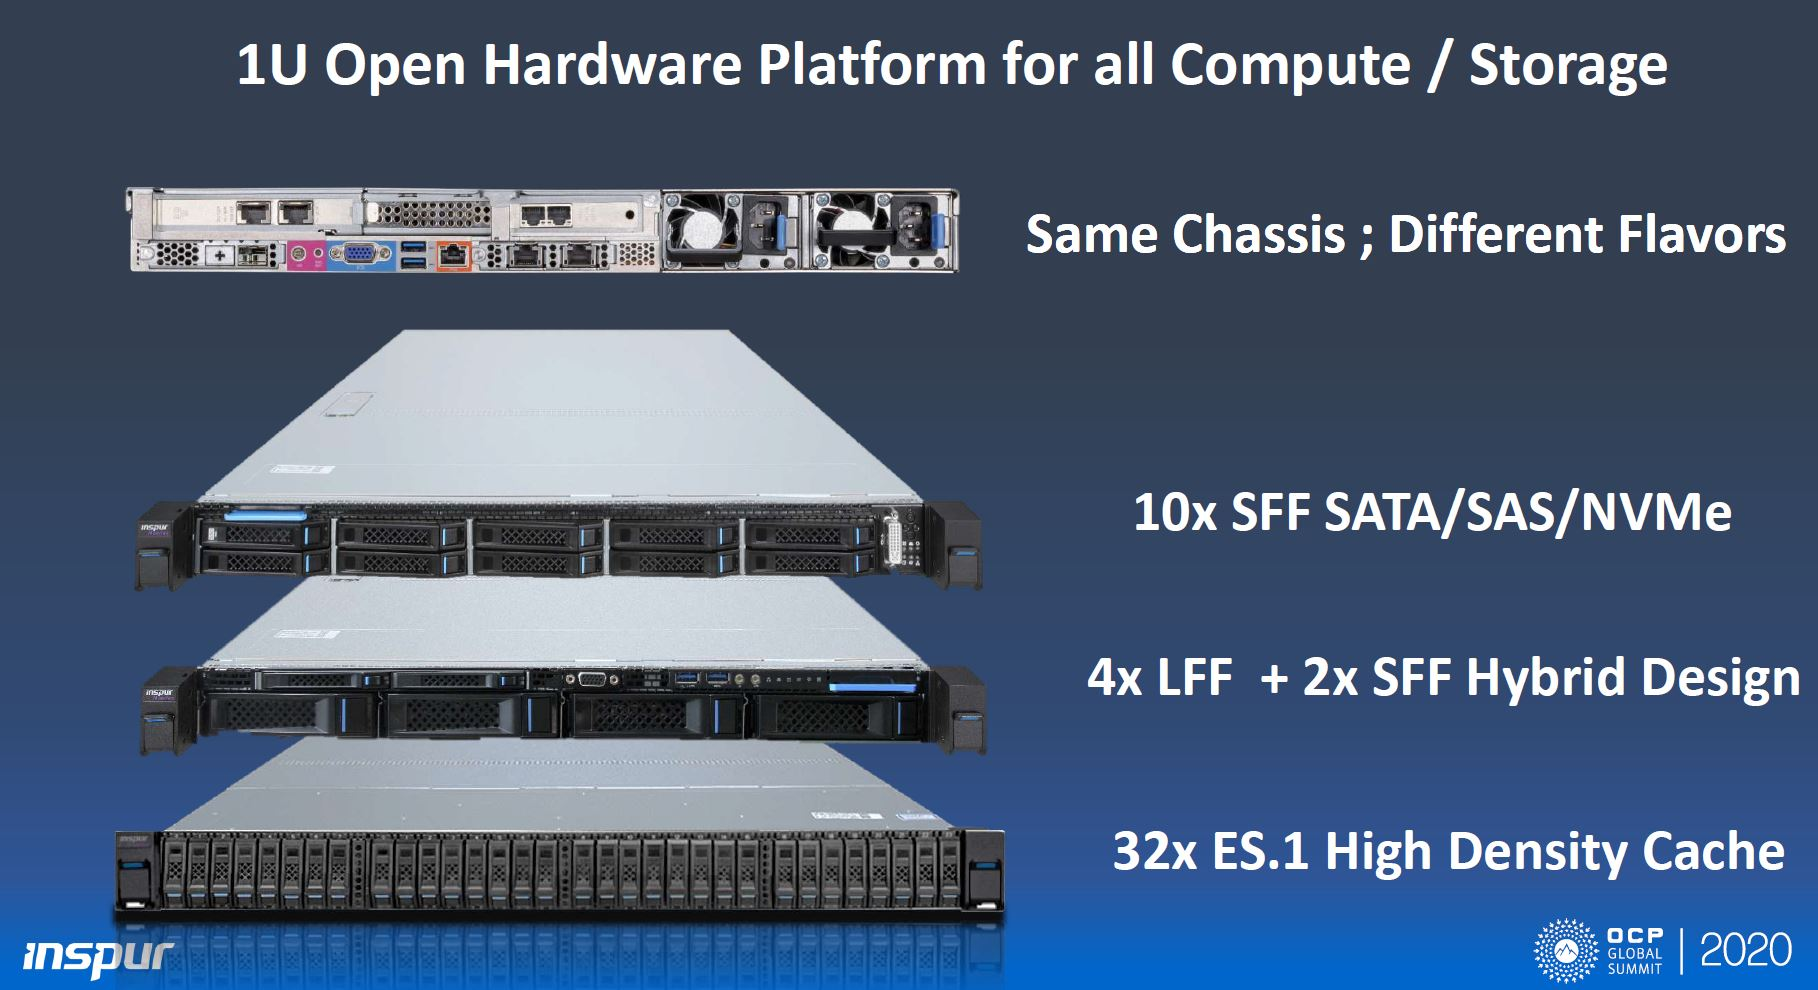 Inspur NF5180M6 1U Open Hardware Platform For Compute And Storage